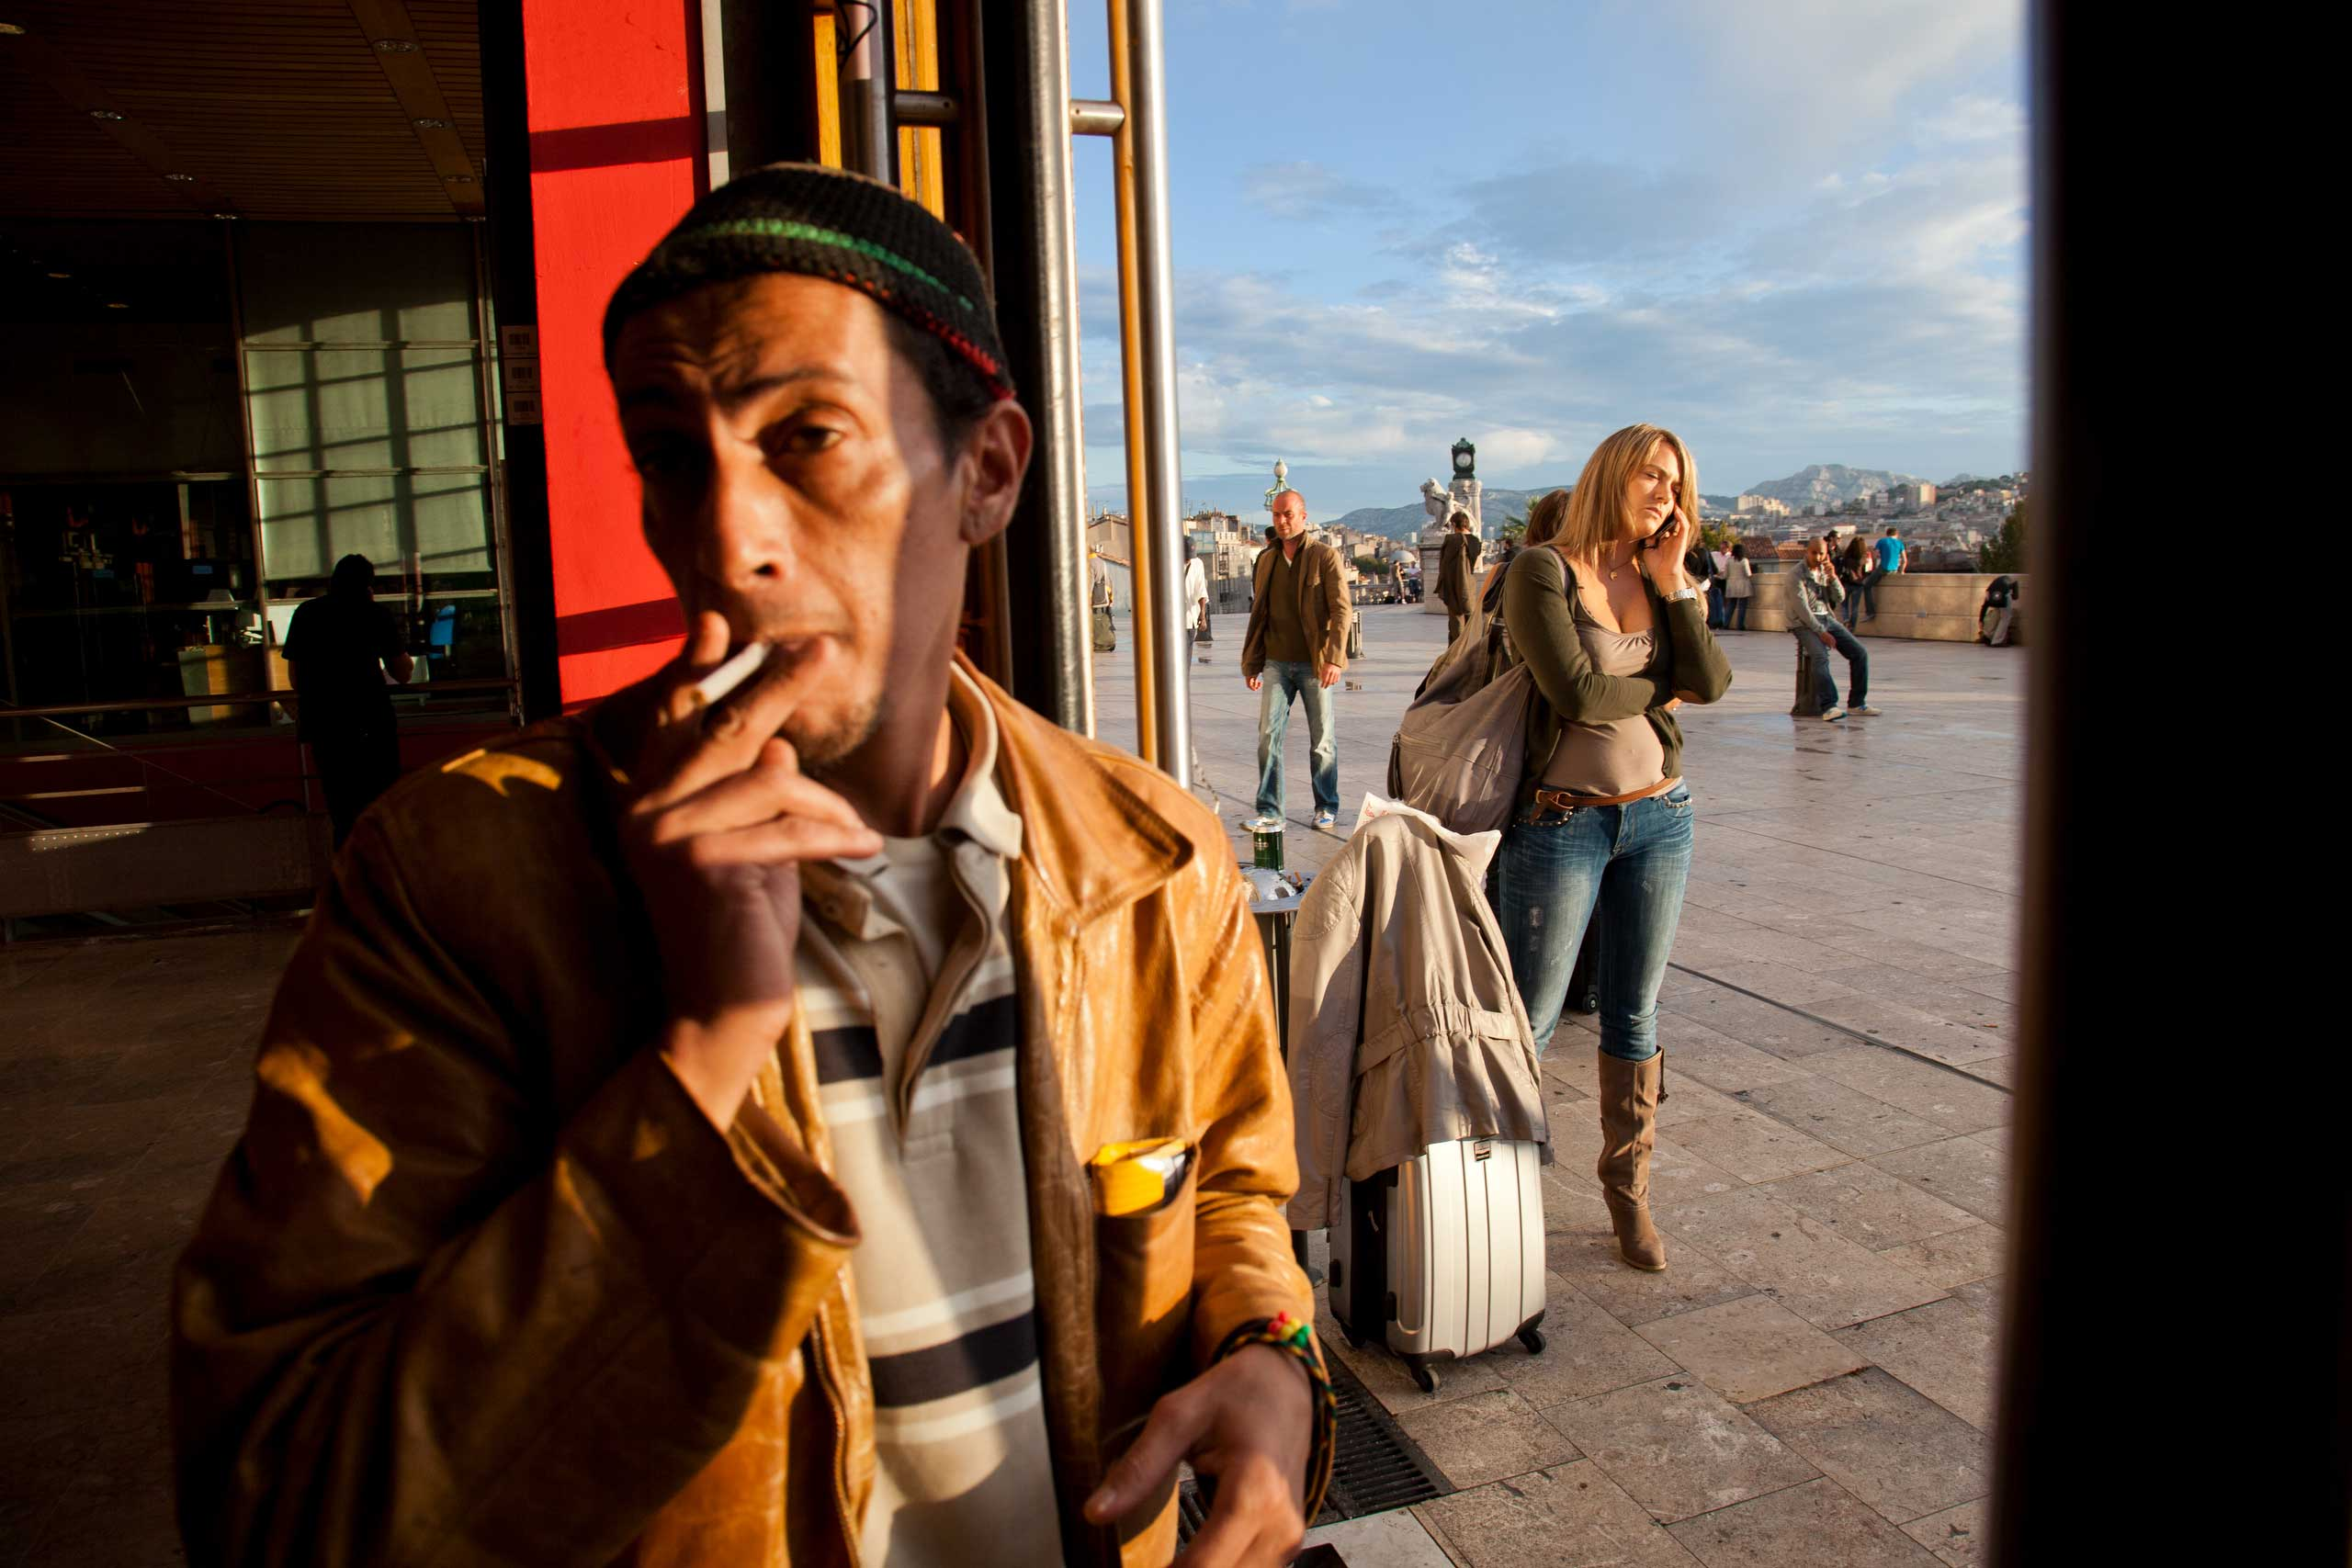 People congregate at the Gare St. Charles, the main train station in Marseille, France on Sept.24, 2010.